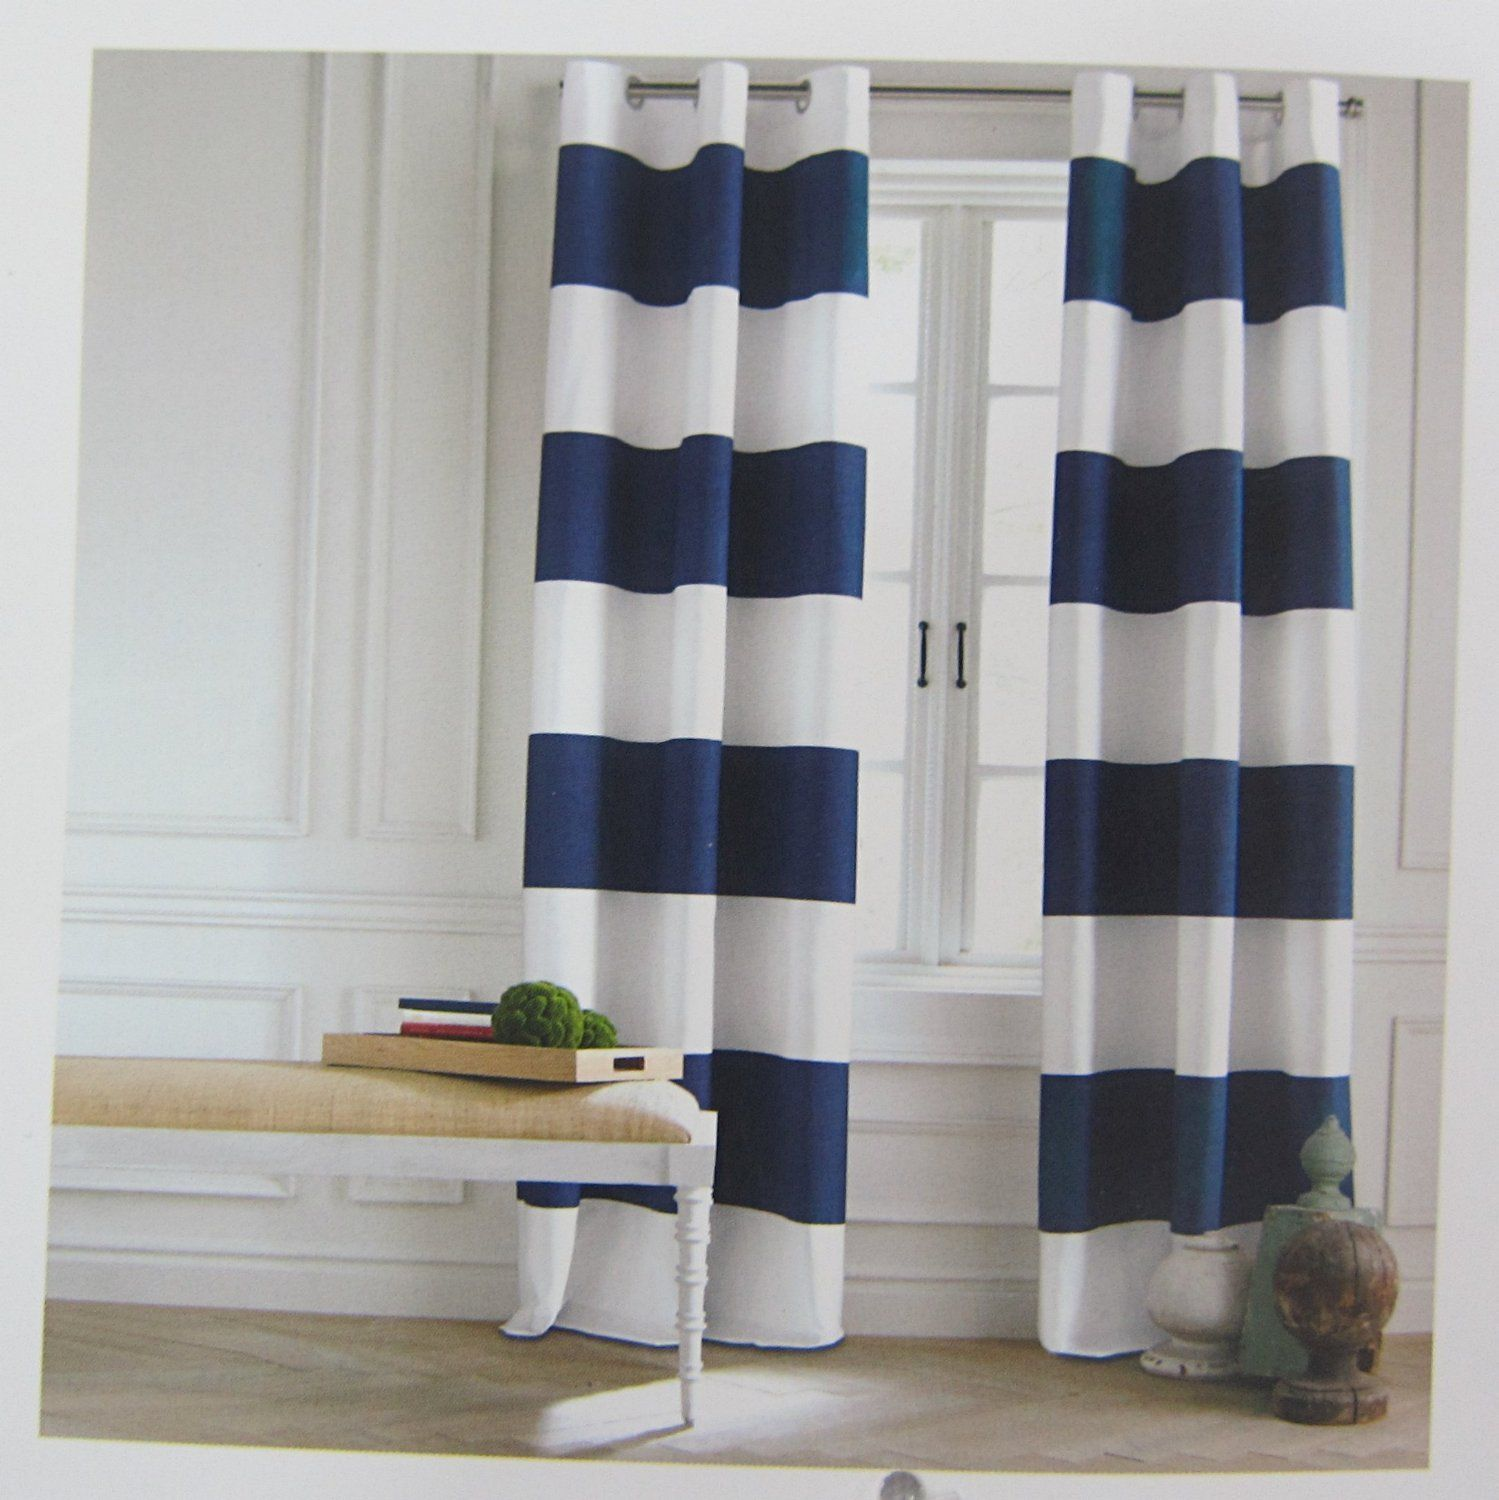 panels decor curtain navy window room darkening products lush swirl com pair curtains lushdecor